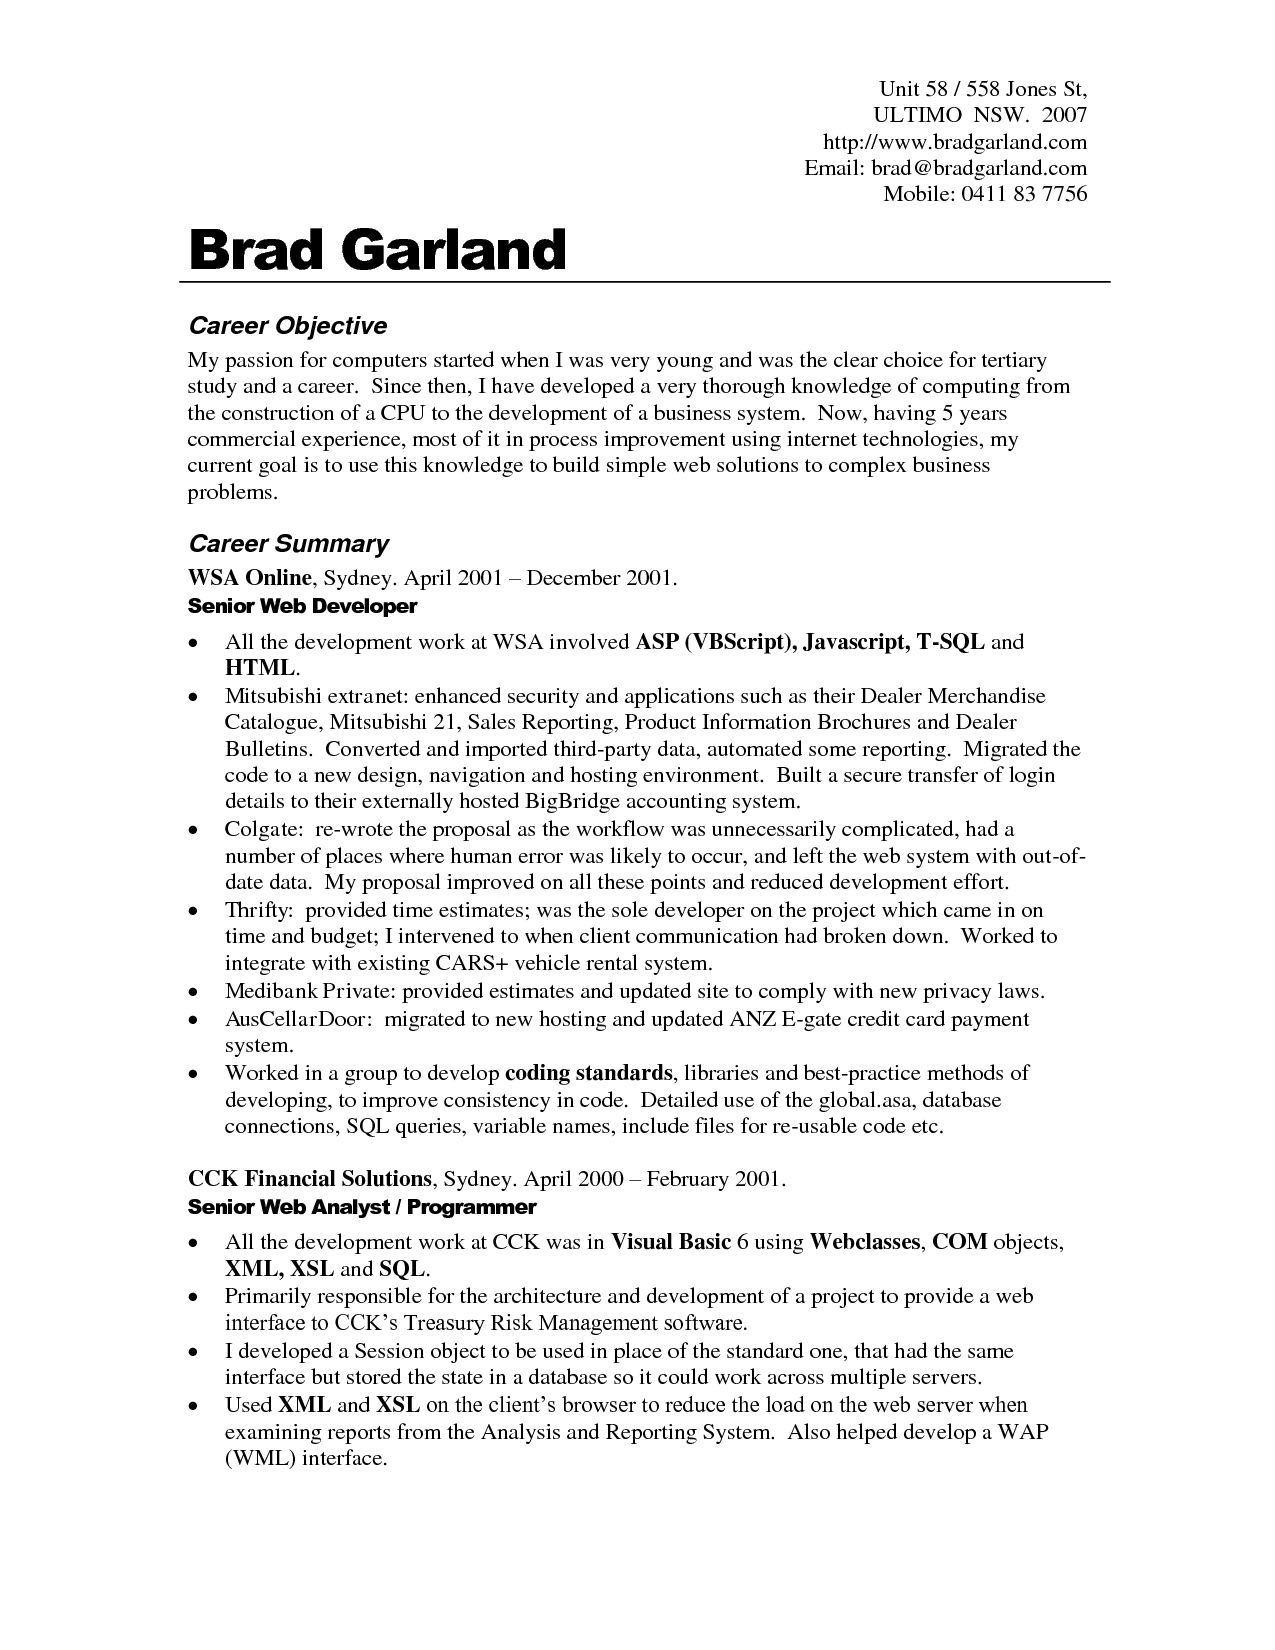 What Is An Objective In A Resume Mesmerizing Resume Examples Job Objective  Sample Resume Entry Level And .